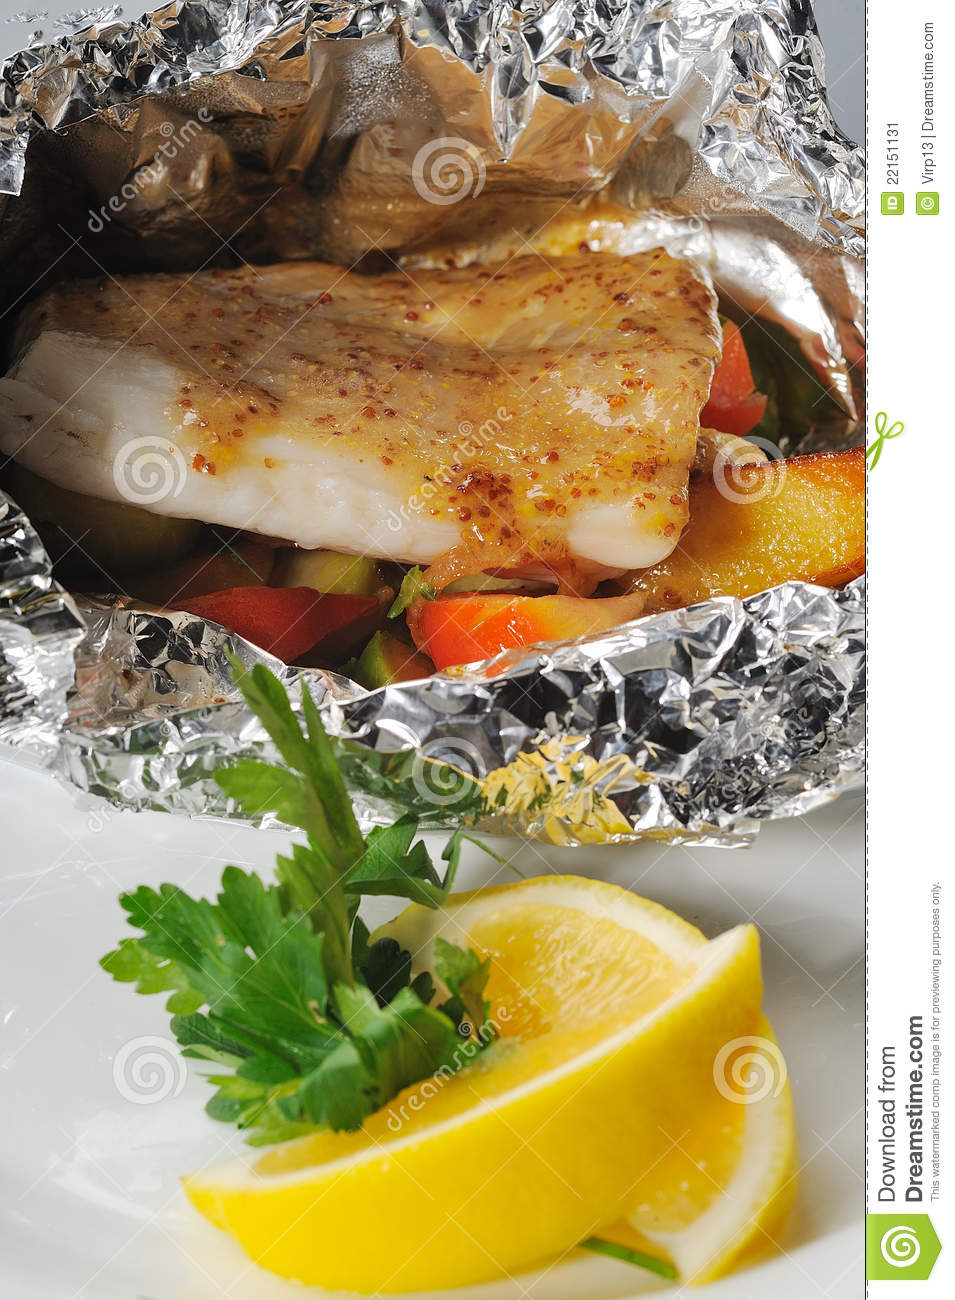 Baked fish in sauce stock image image of parsley dish for Sauce for baked fish